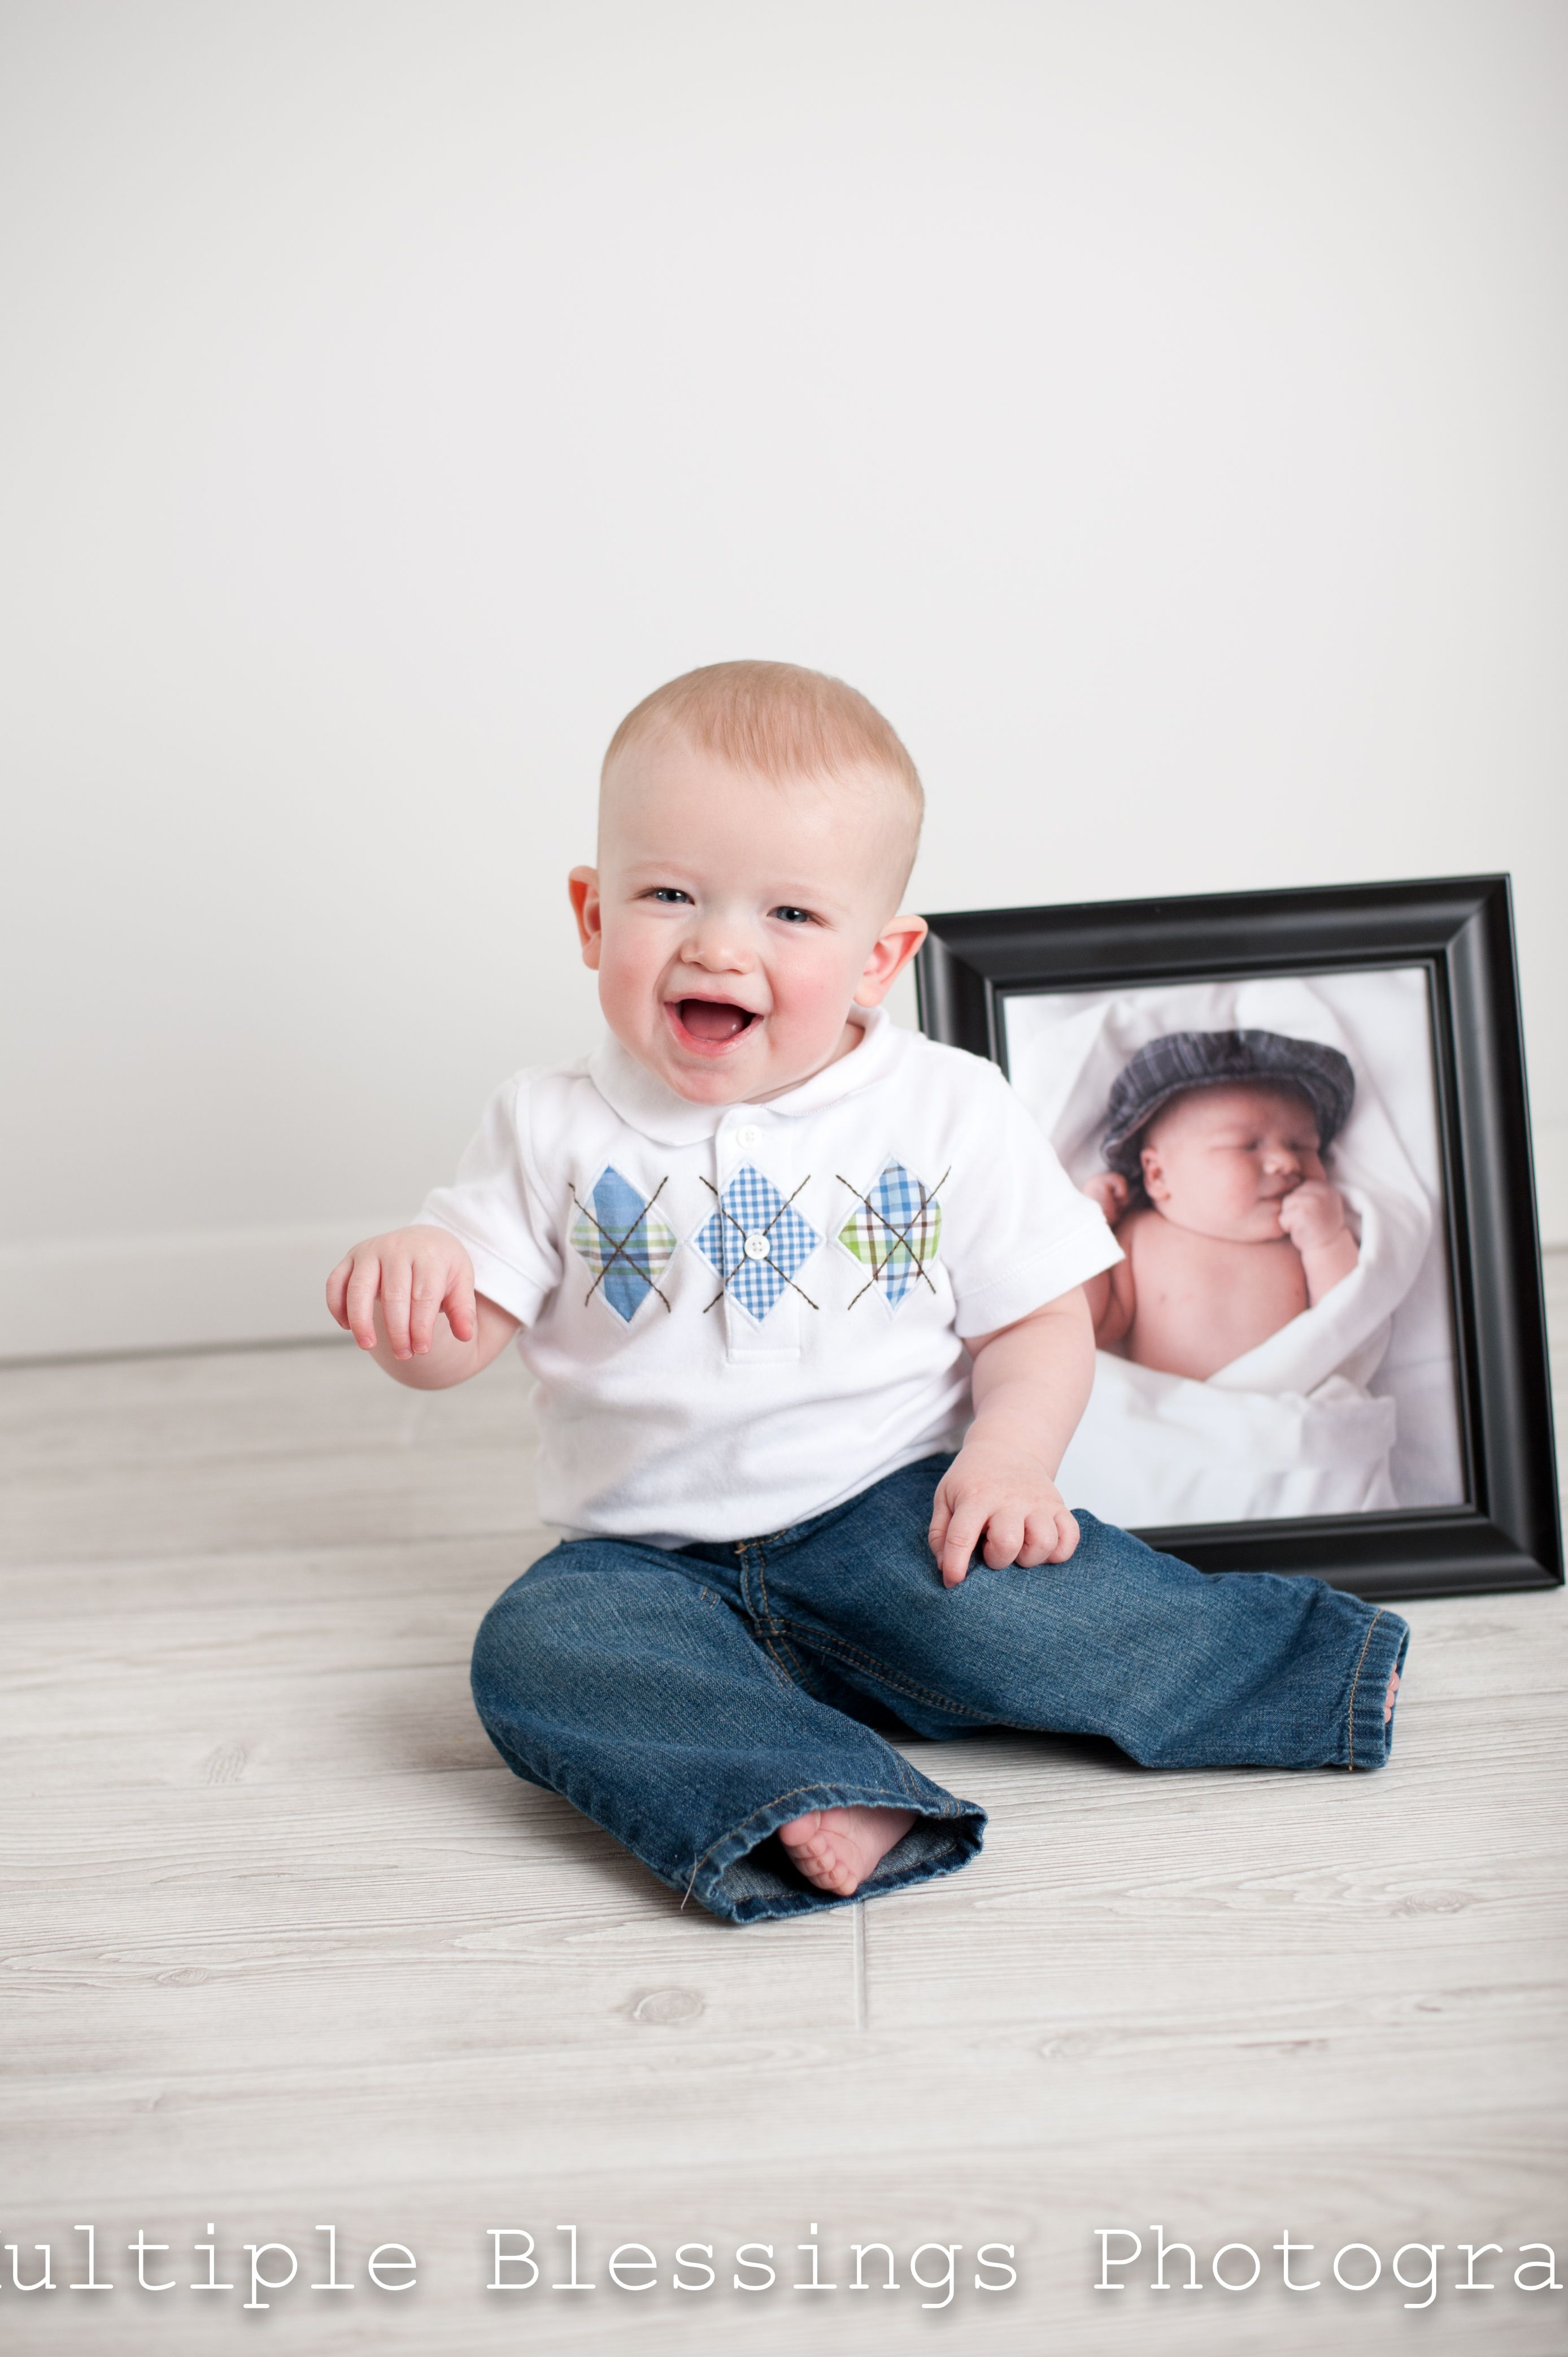 i had the parents bring babies newborn picture we used it with his 1st birthday pictures  Look